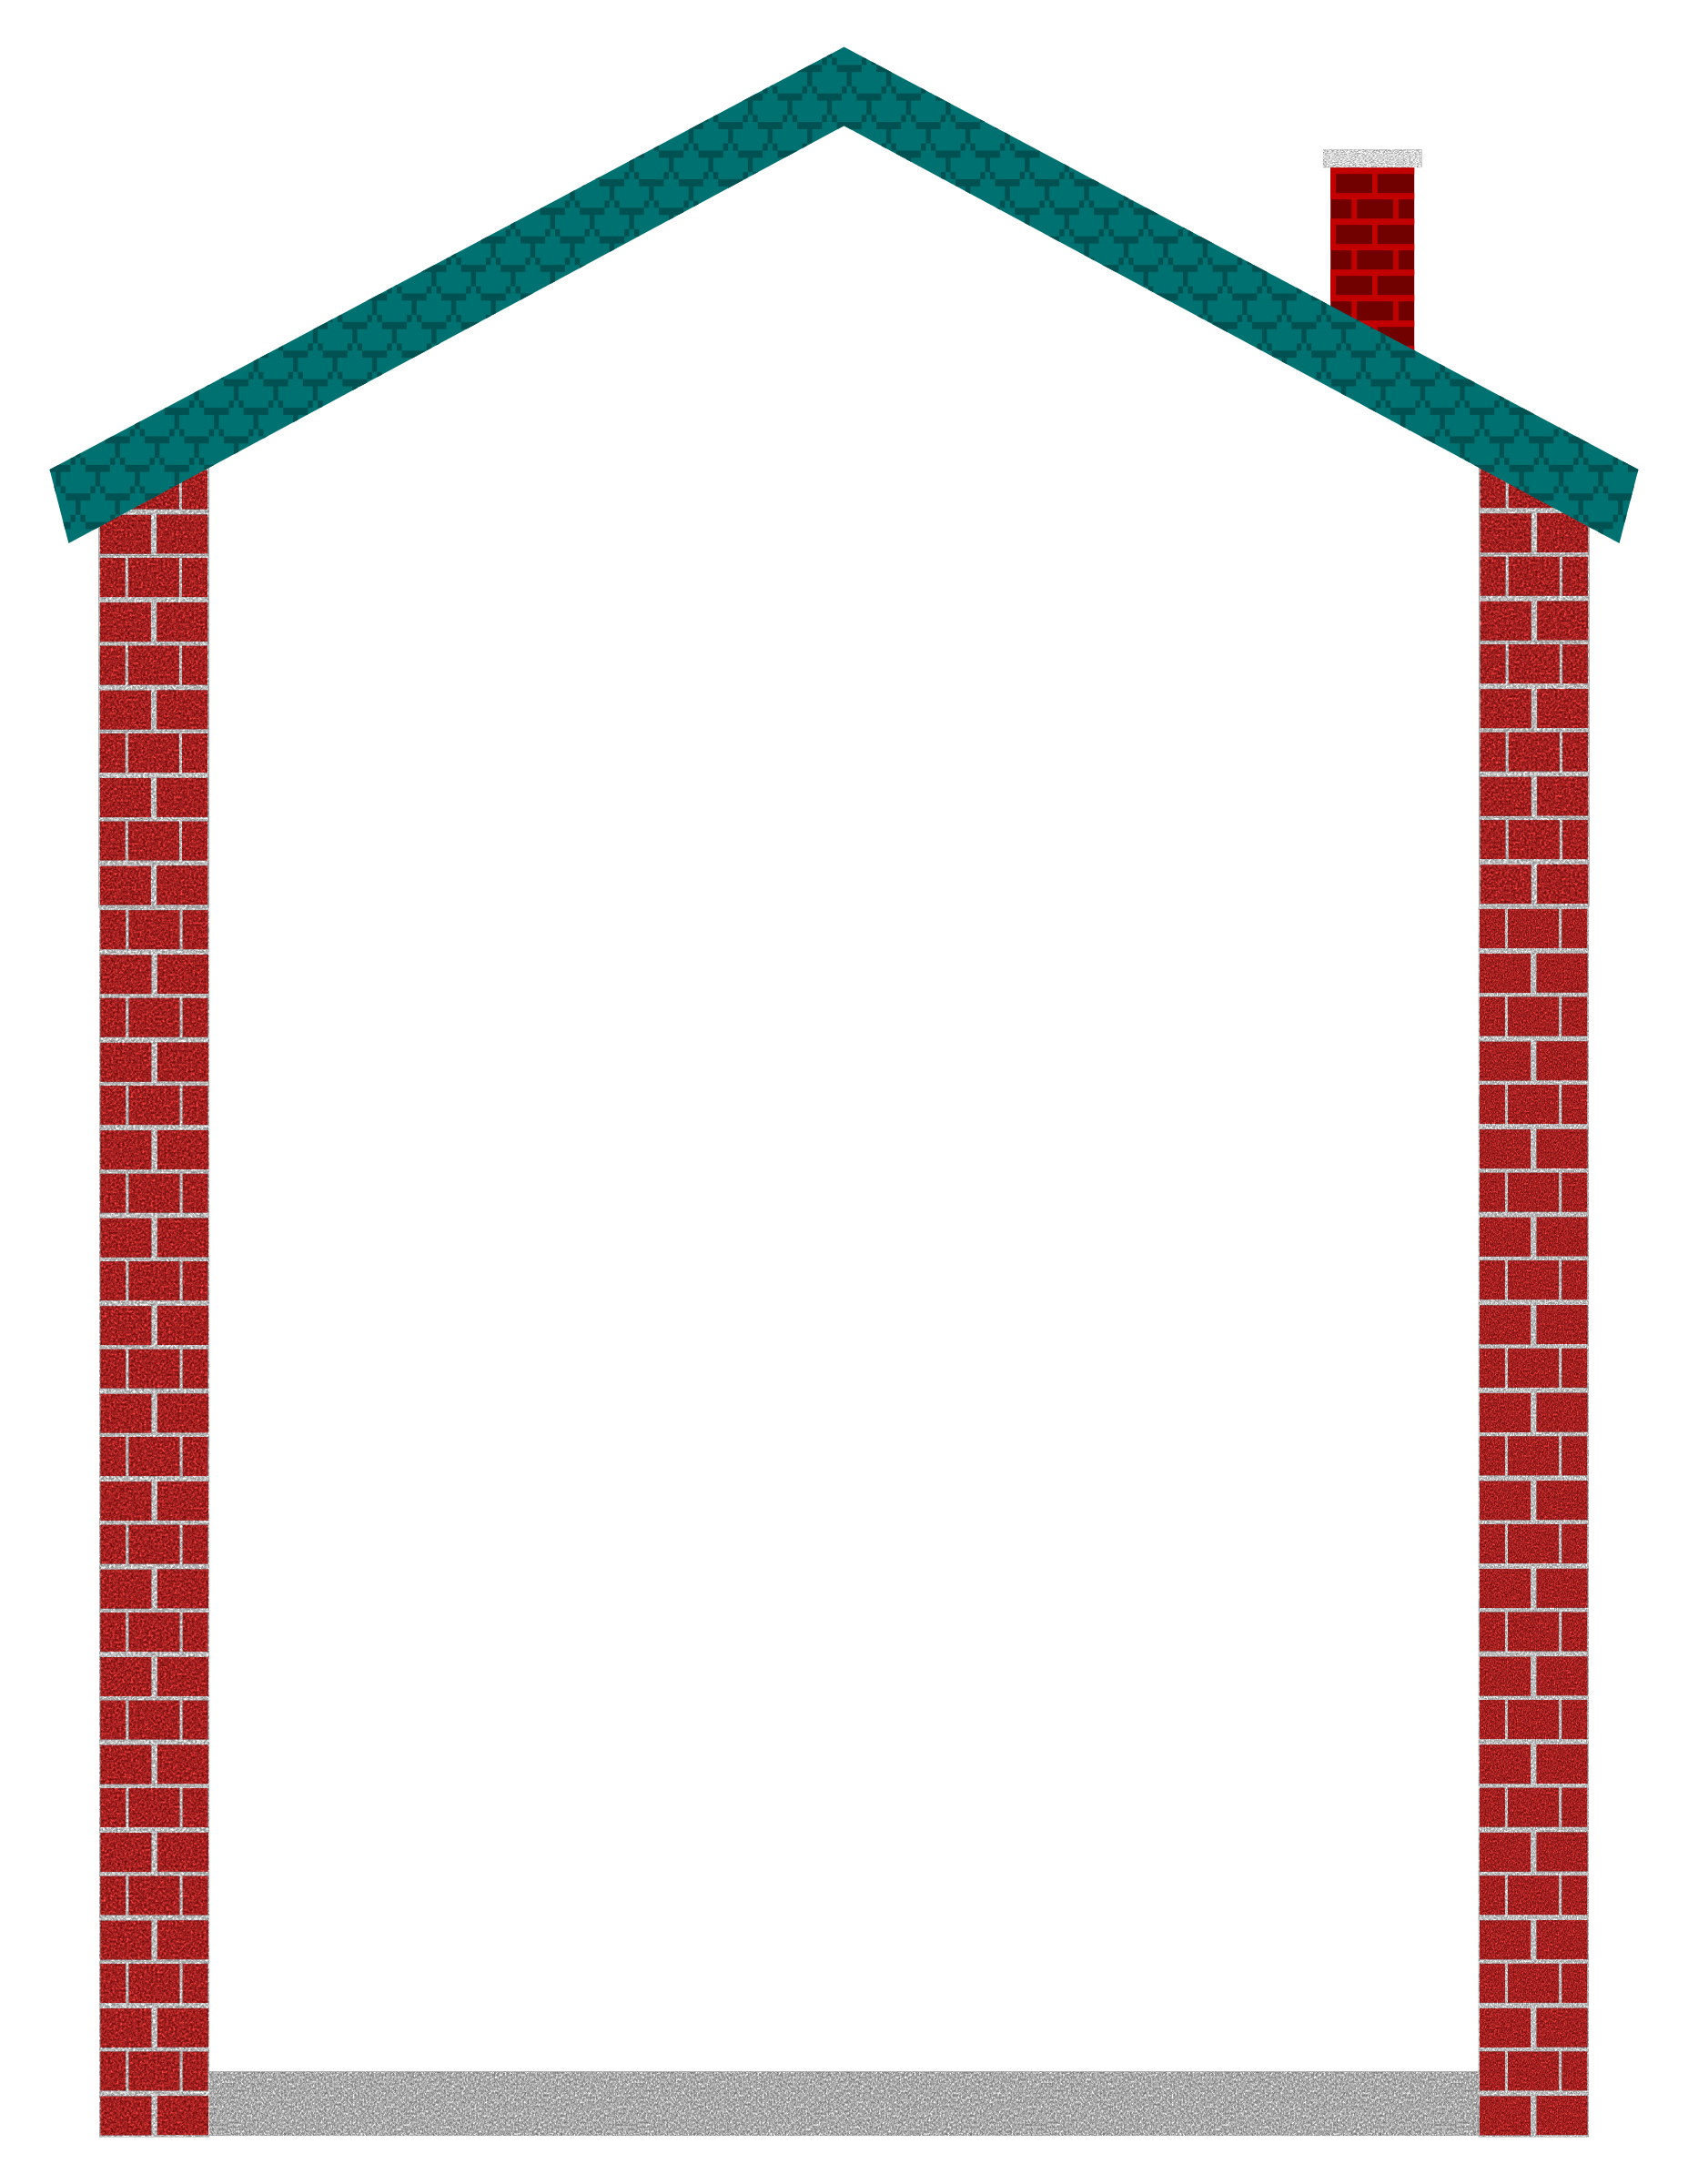 Clipart house border 02 for Png home designs